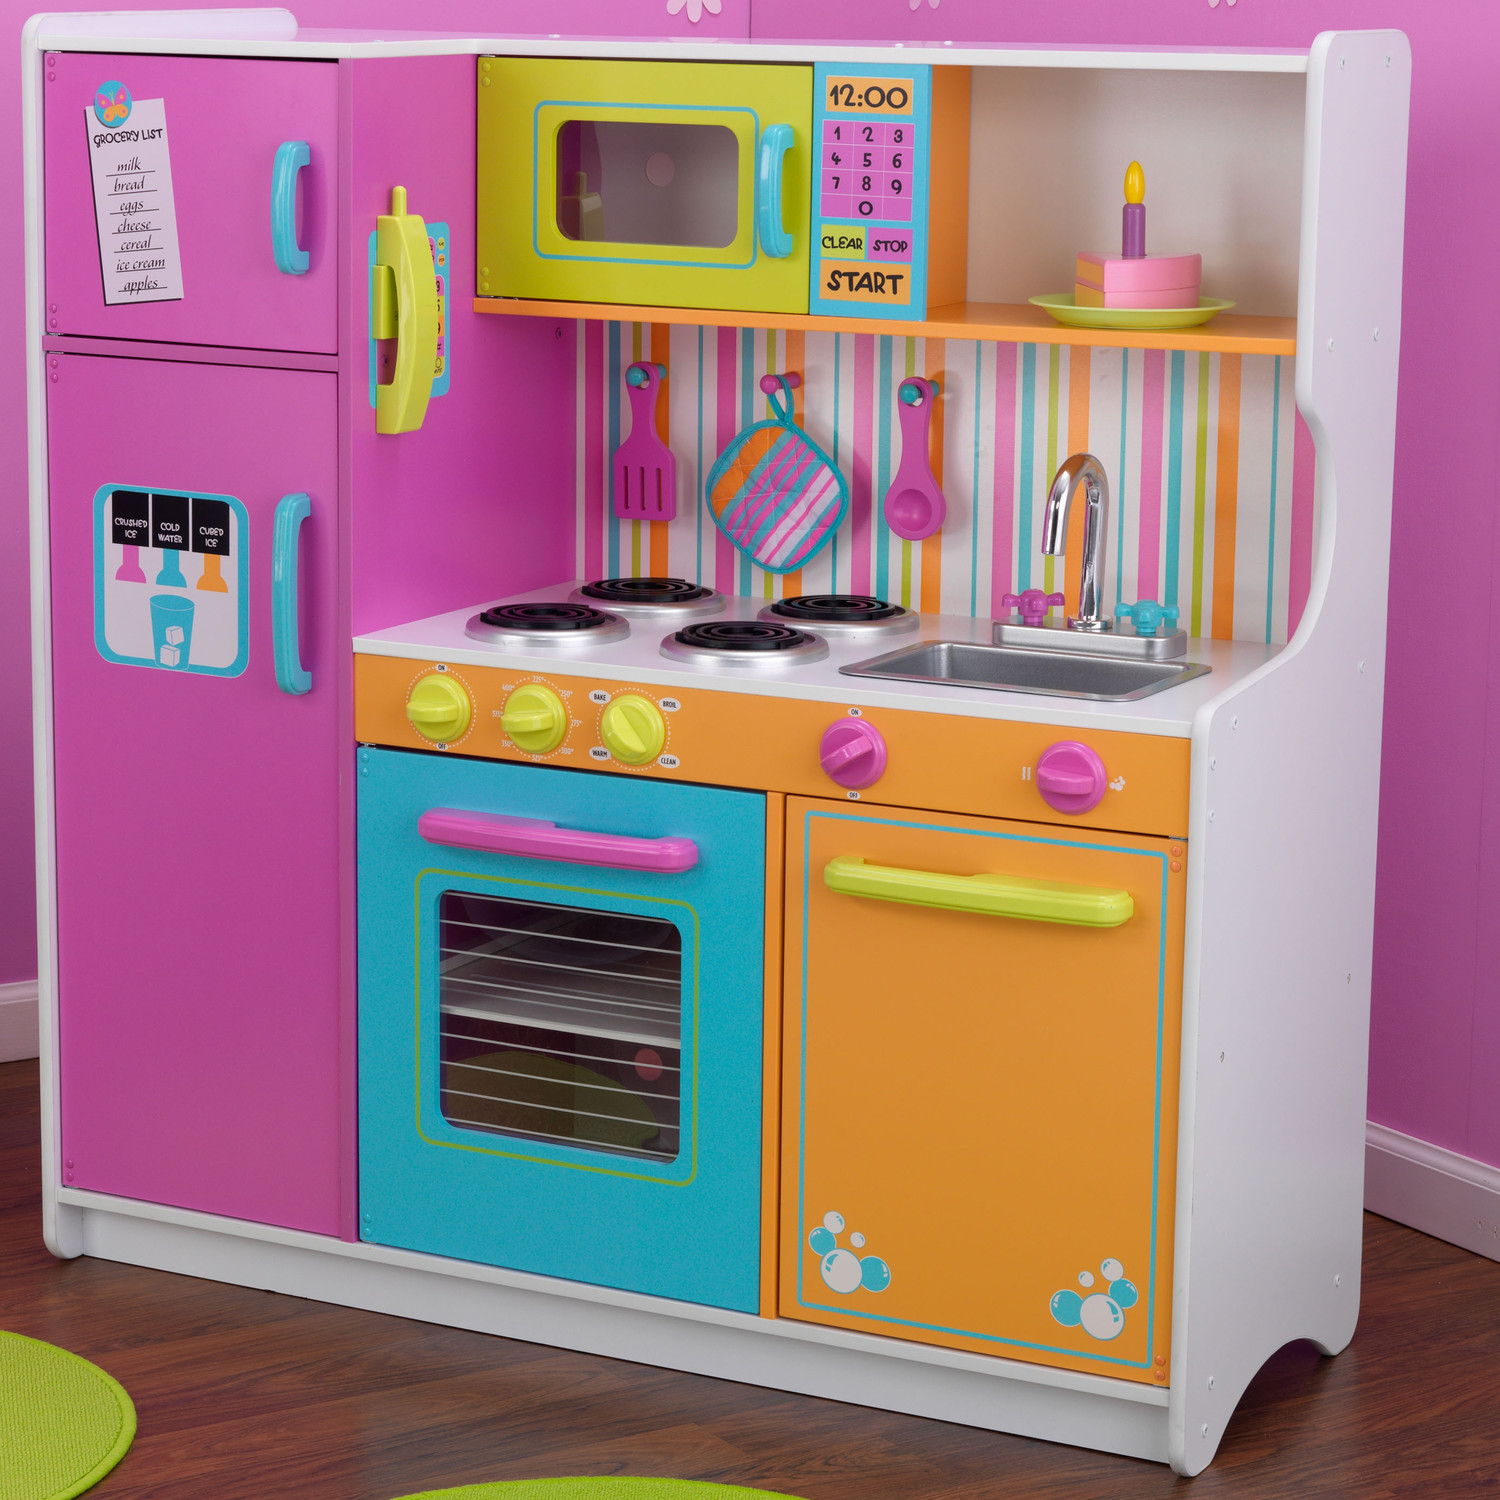 Indigo canada toy sale save 59 off kidkraft deluxe for Toy kitchen set